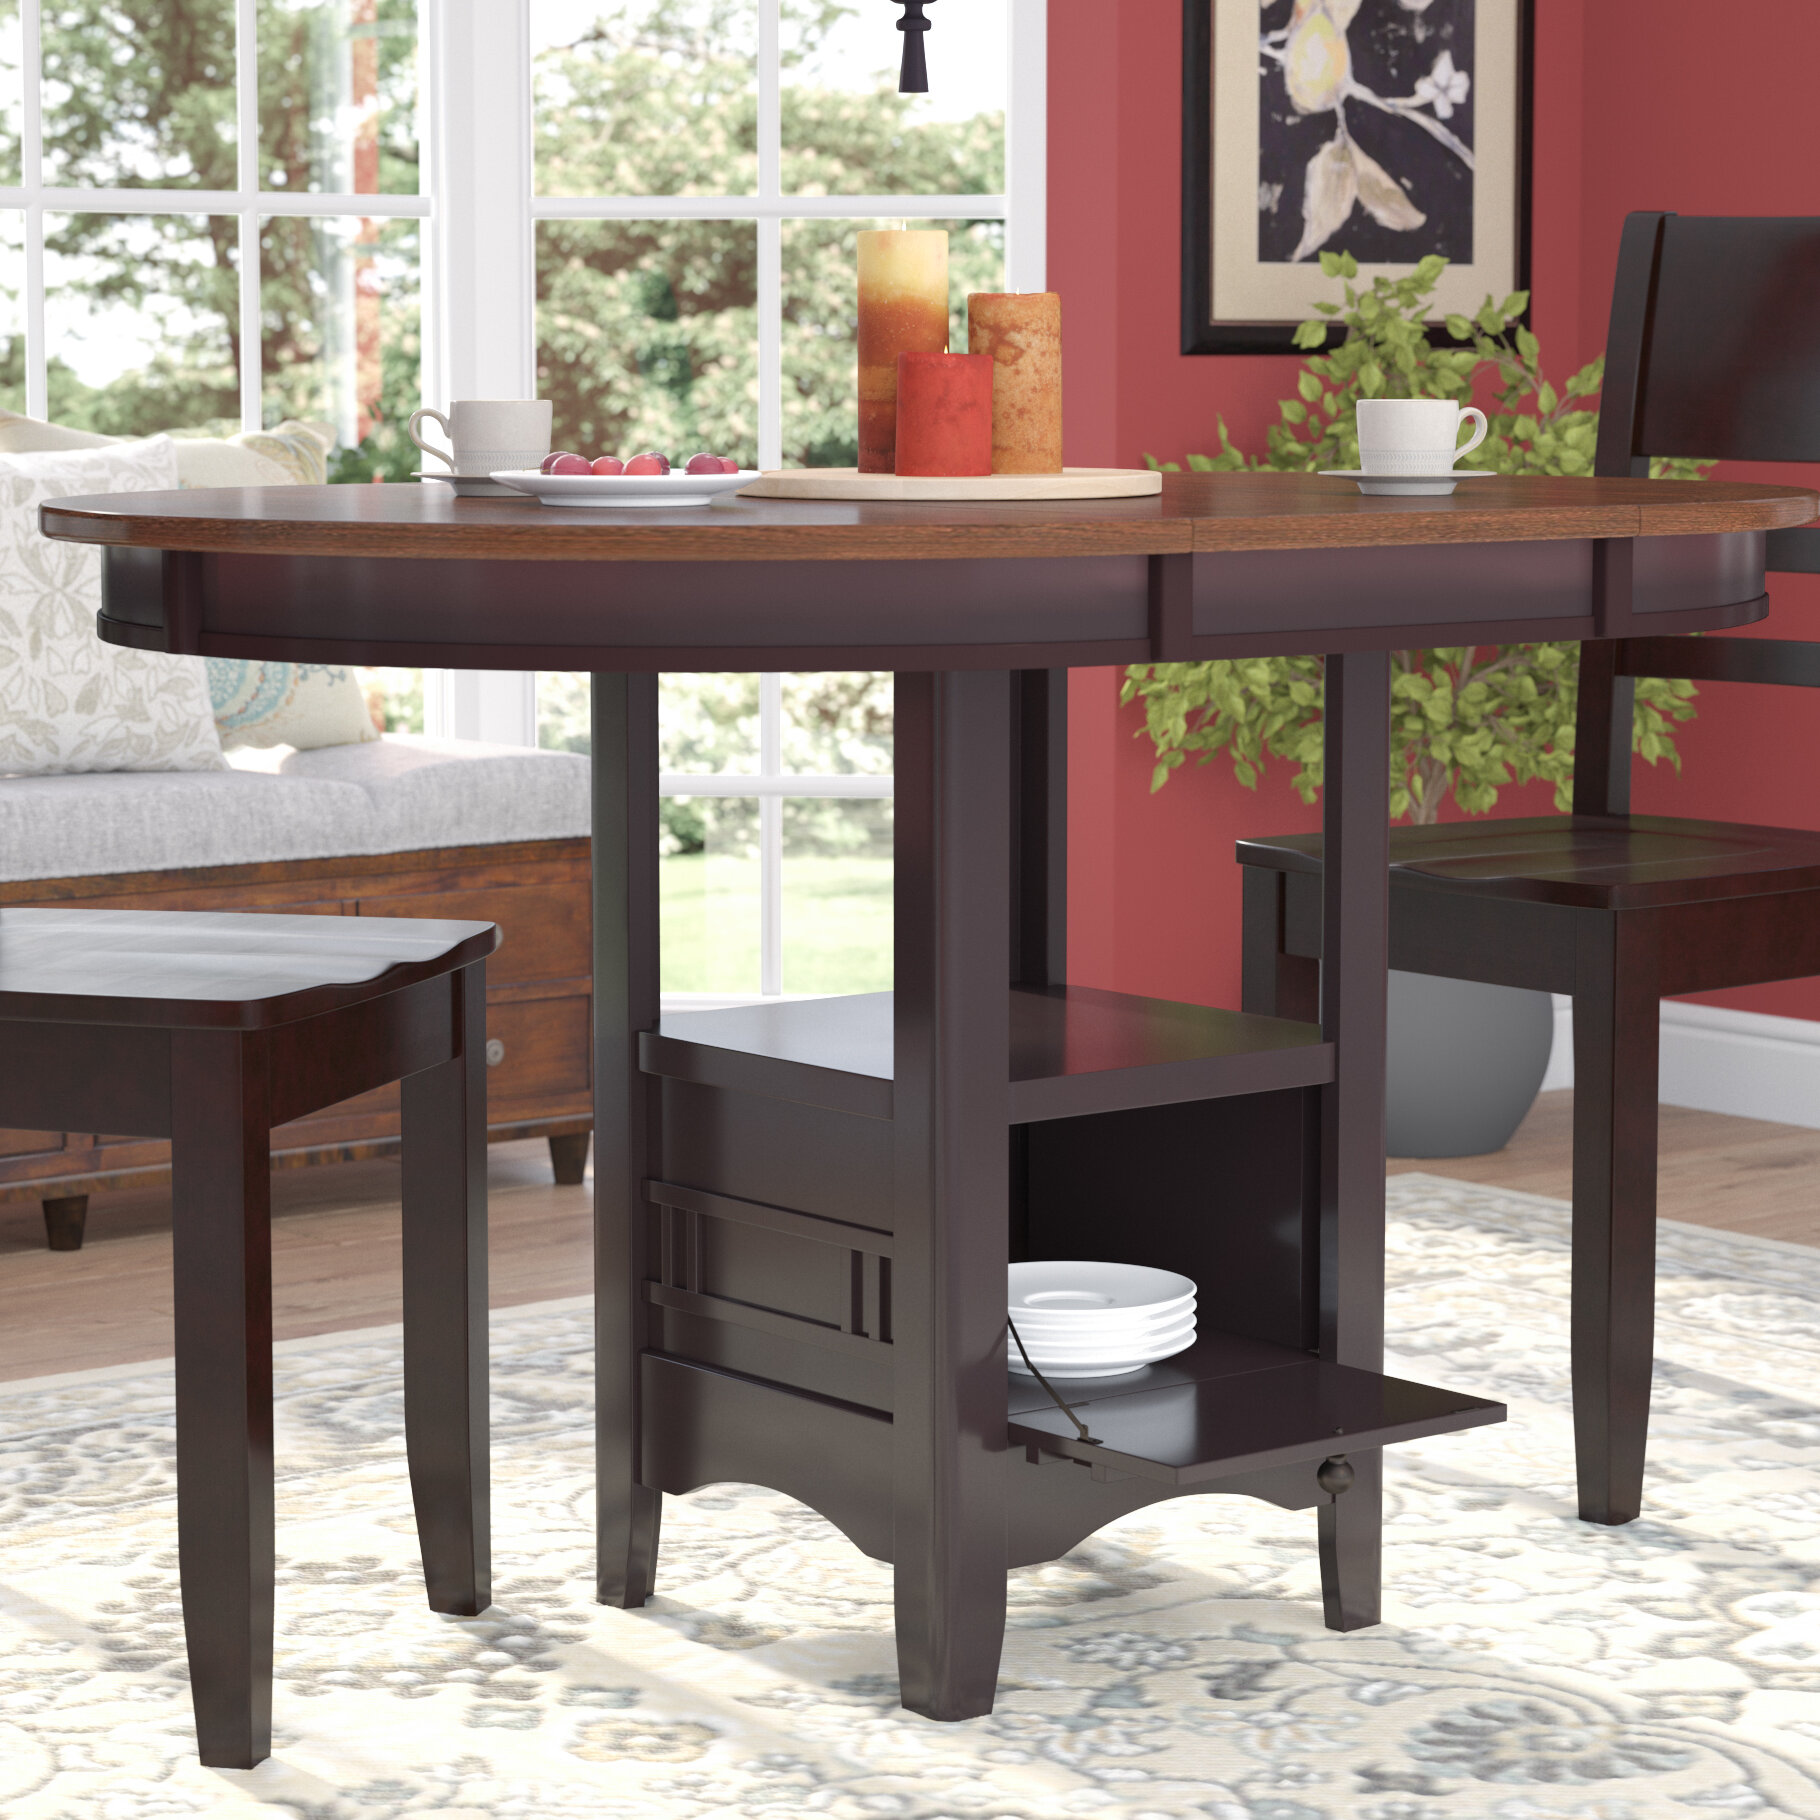 Stupendous Sinkler Counter Height Drop Leaf Dining Table Download Free Architecture Designs Embacsunscenecom